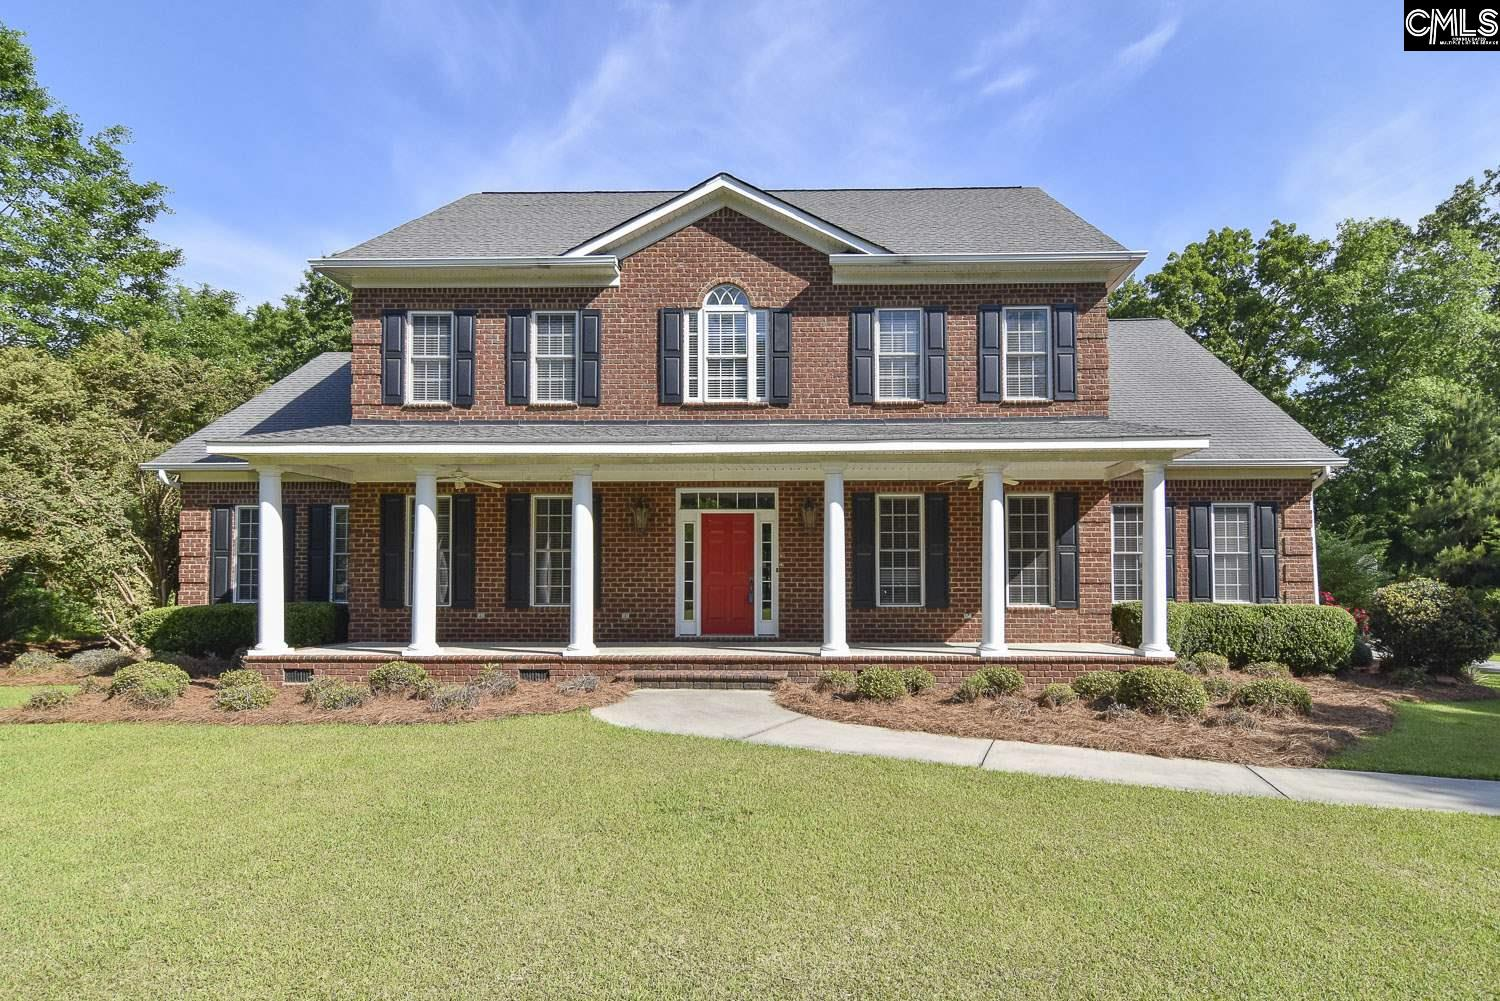 123 Silver Wing Drive West Columbia, SC 29169-6264